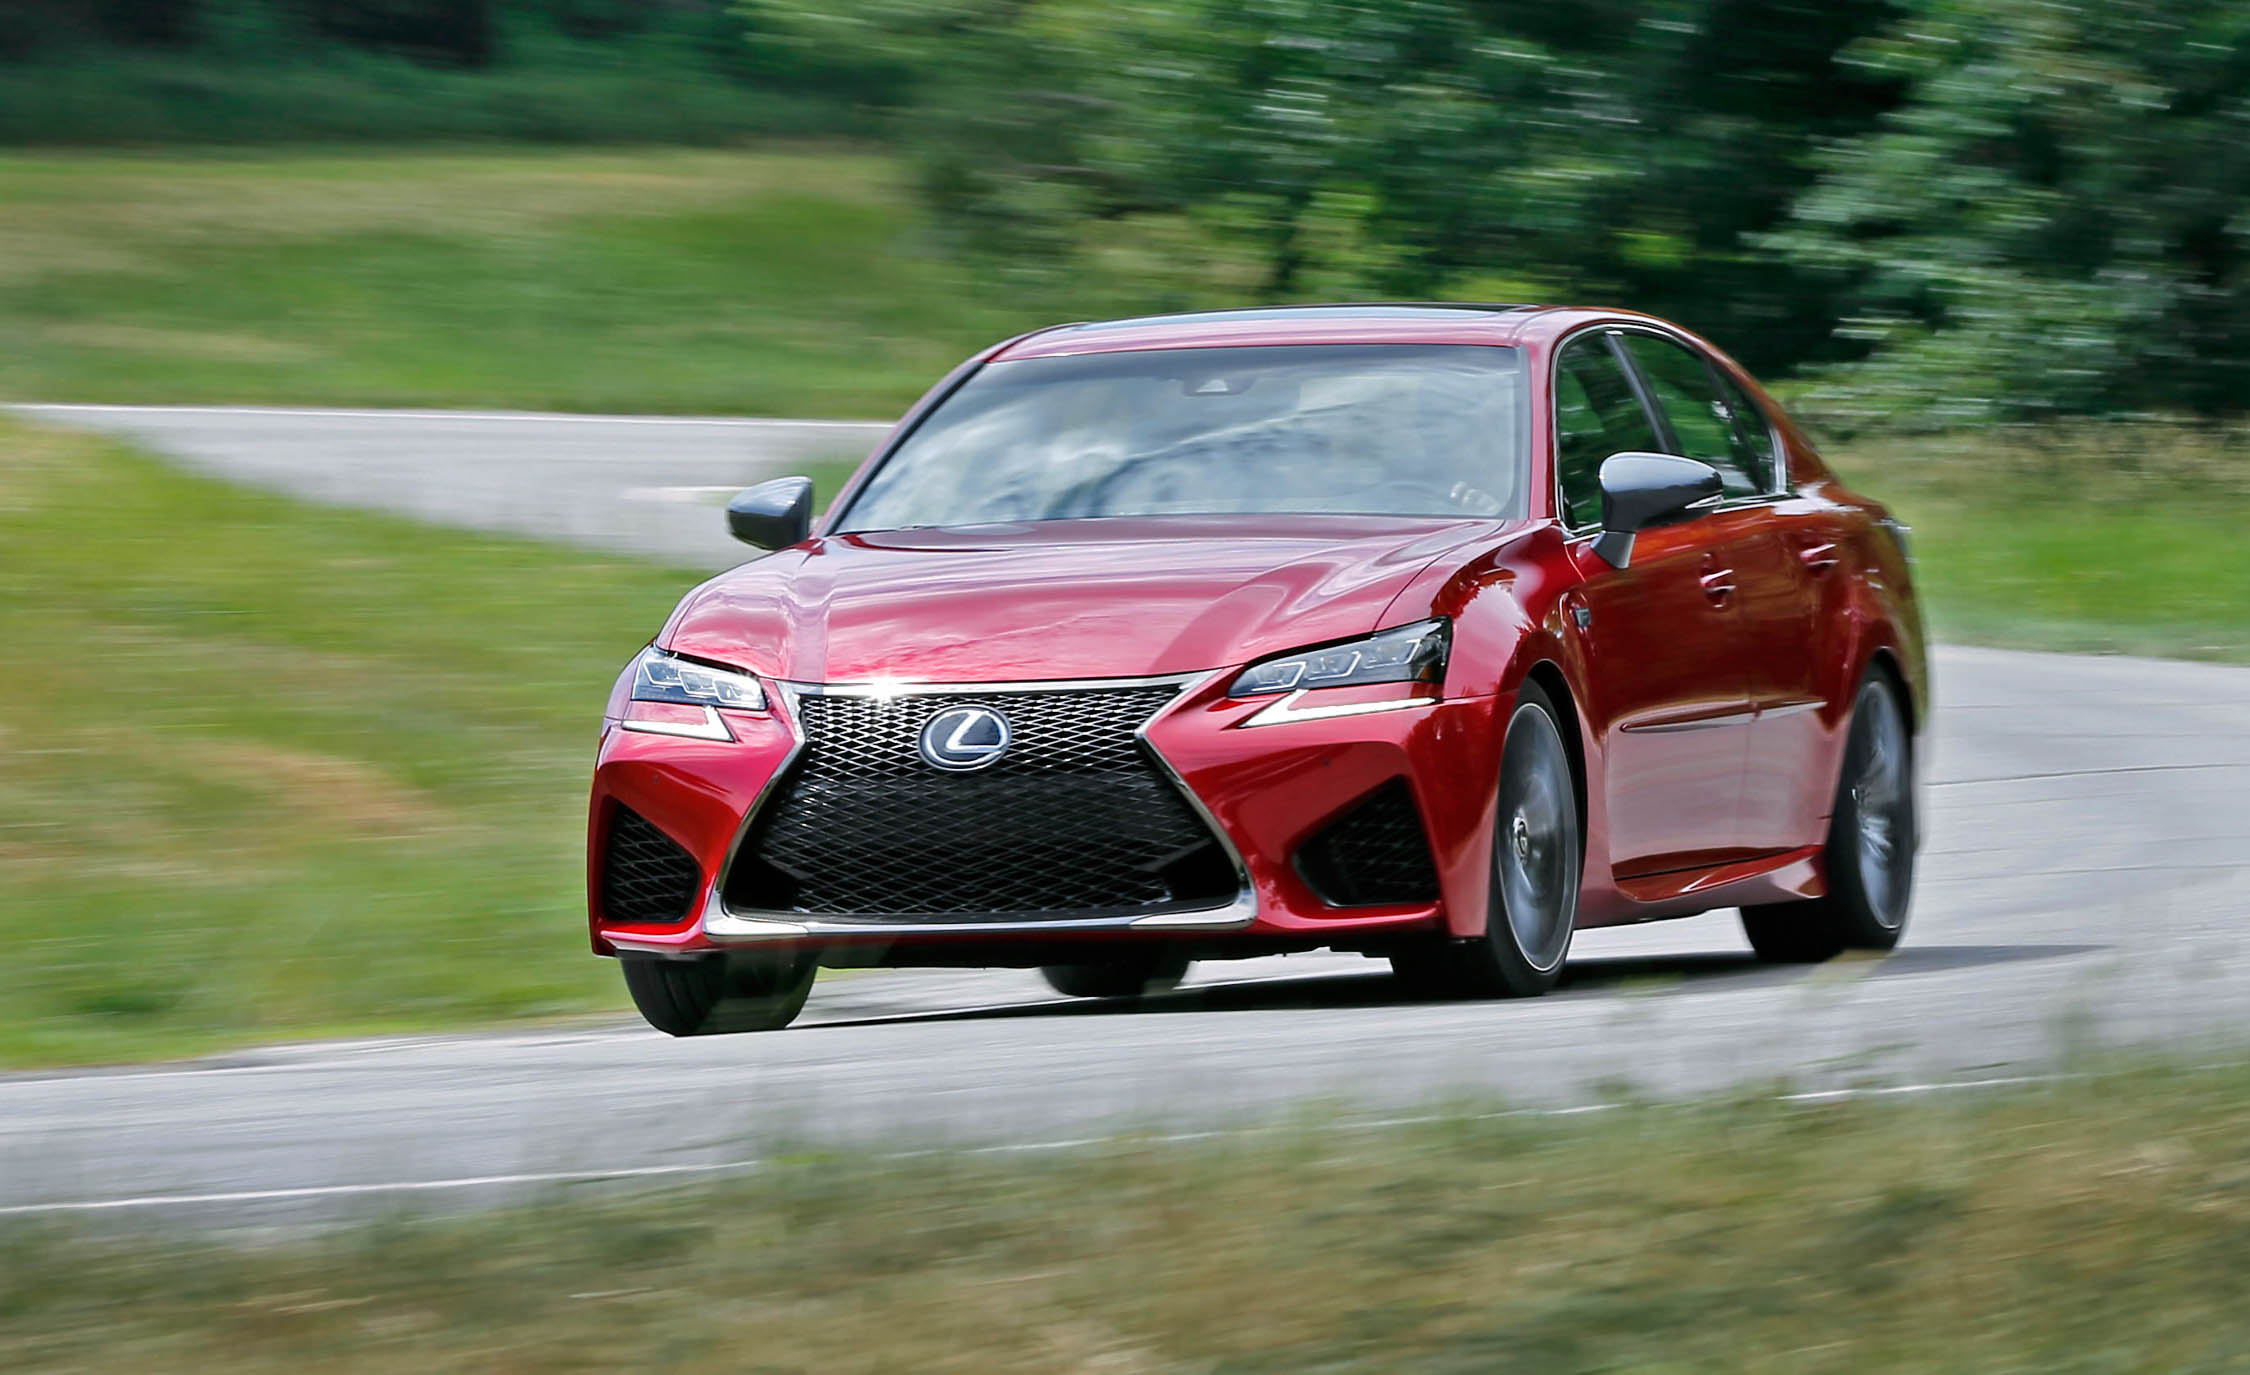 2016 Lexus Gs F Test Drive Front View (Photo 12 of 20)